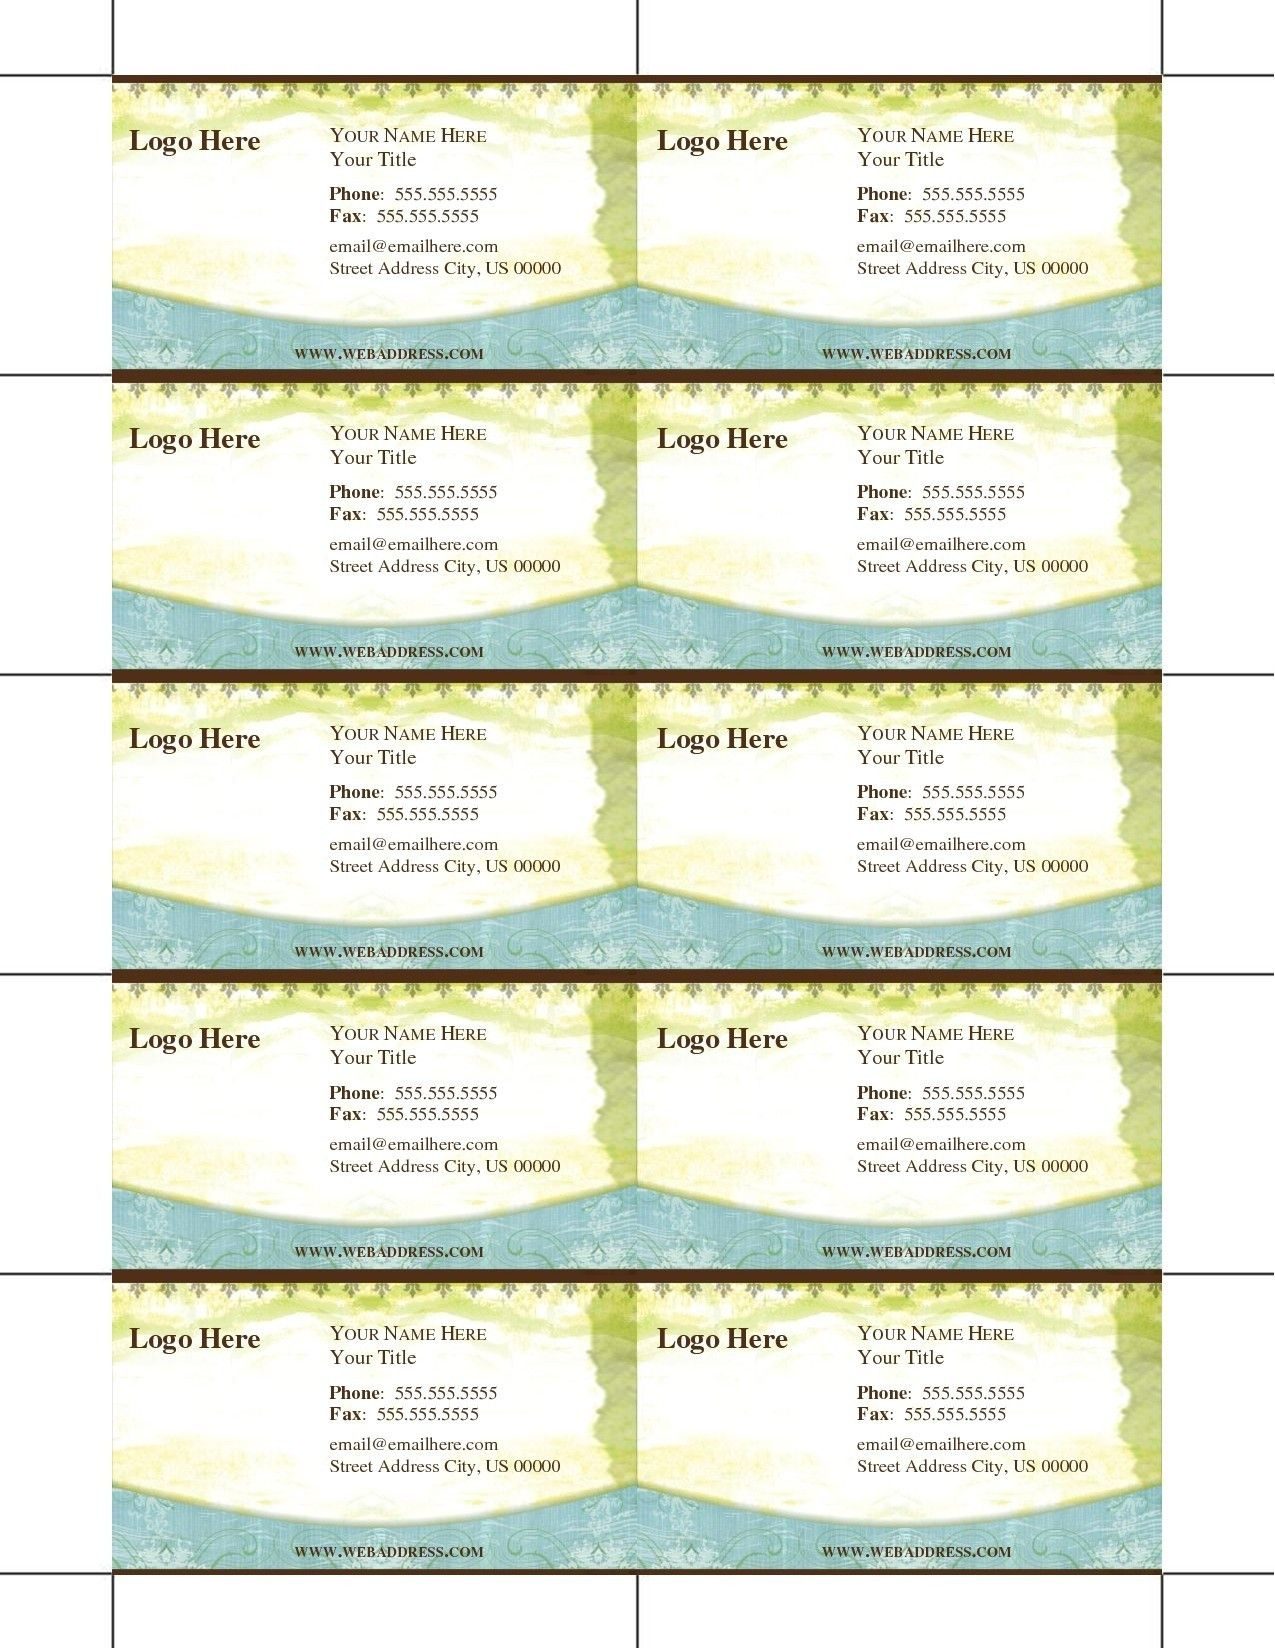 Free Business Cards To Print Out At Home Template Design